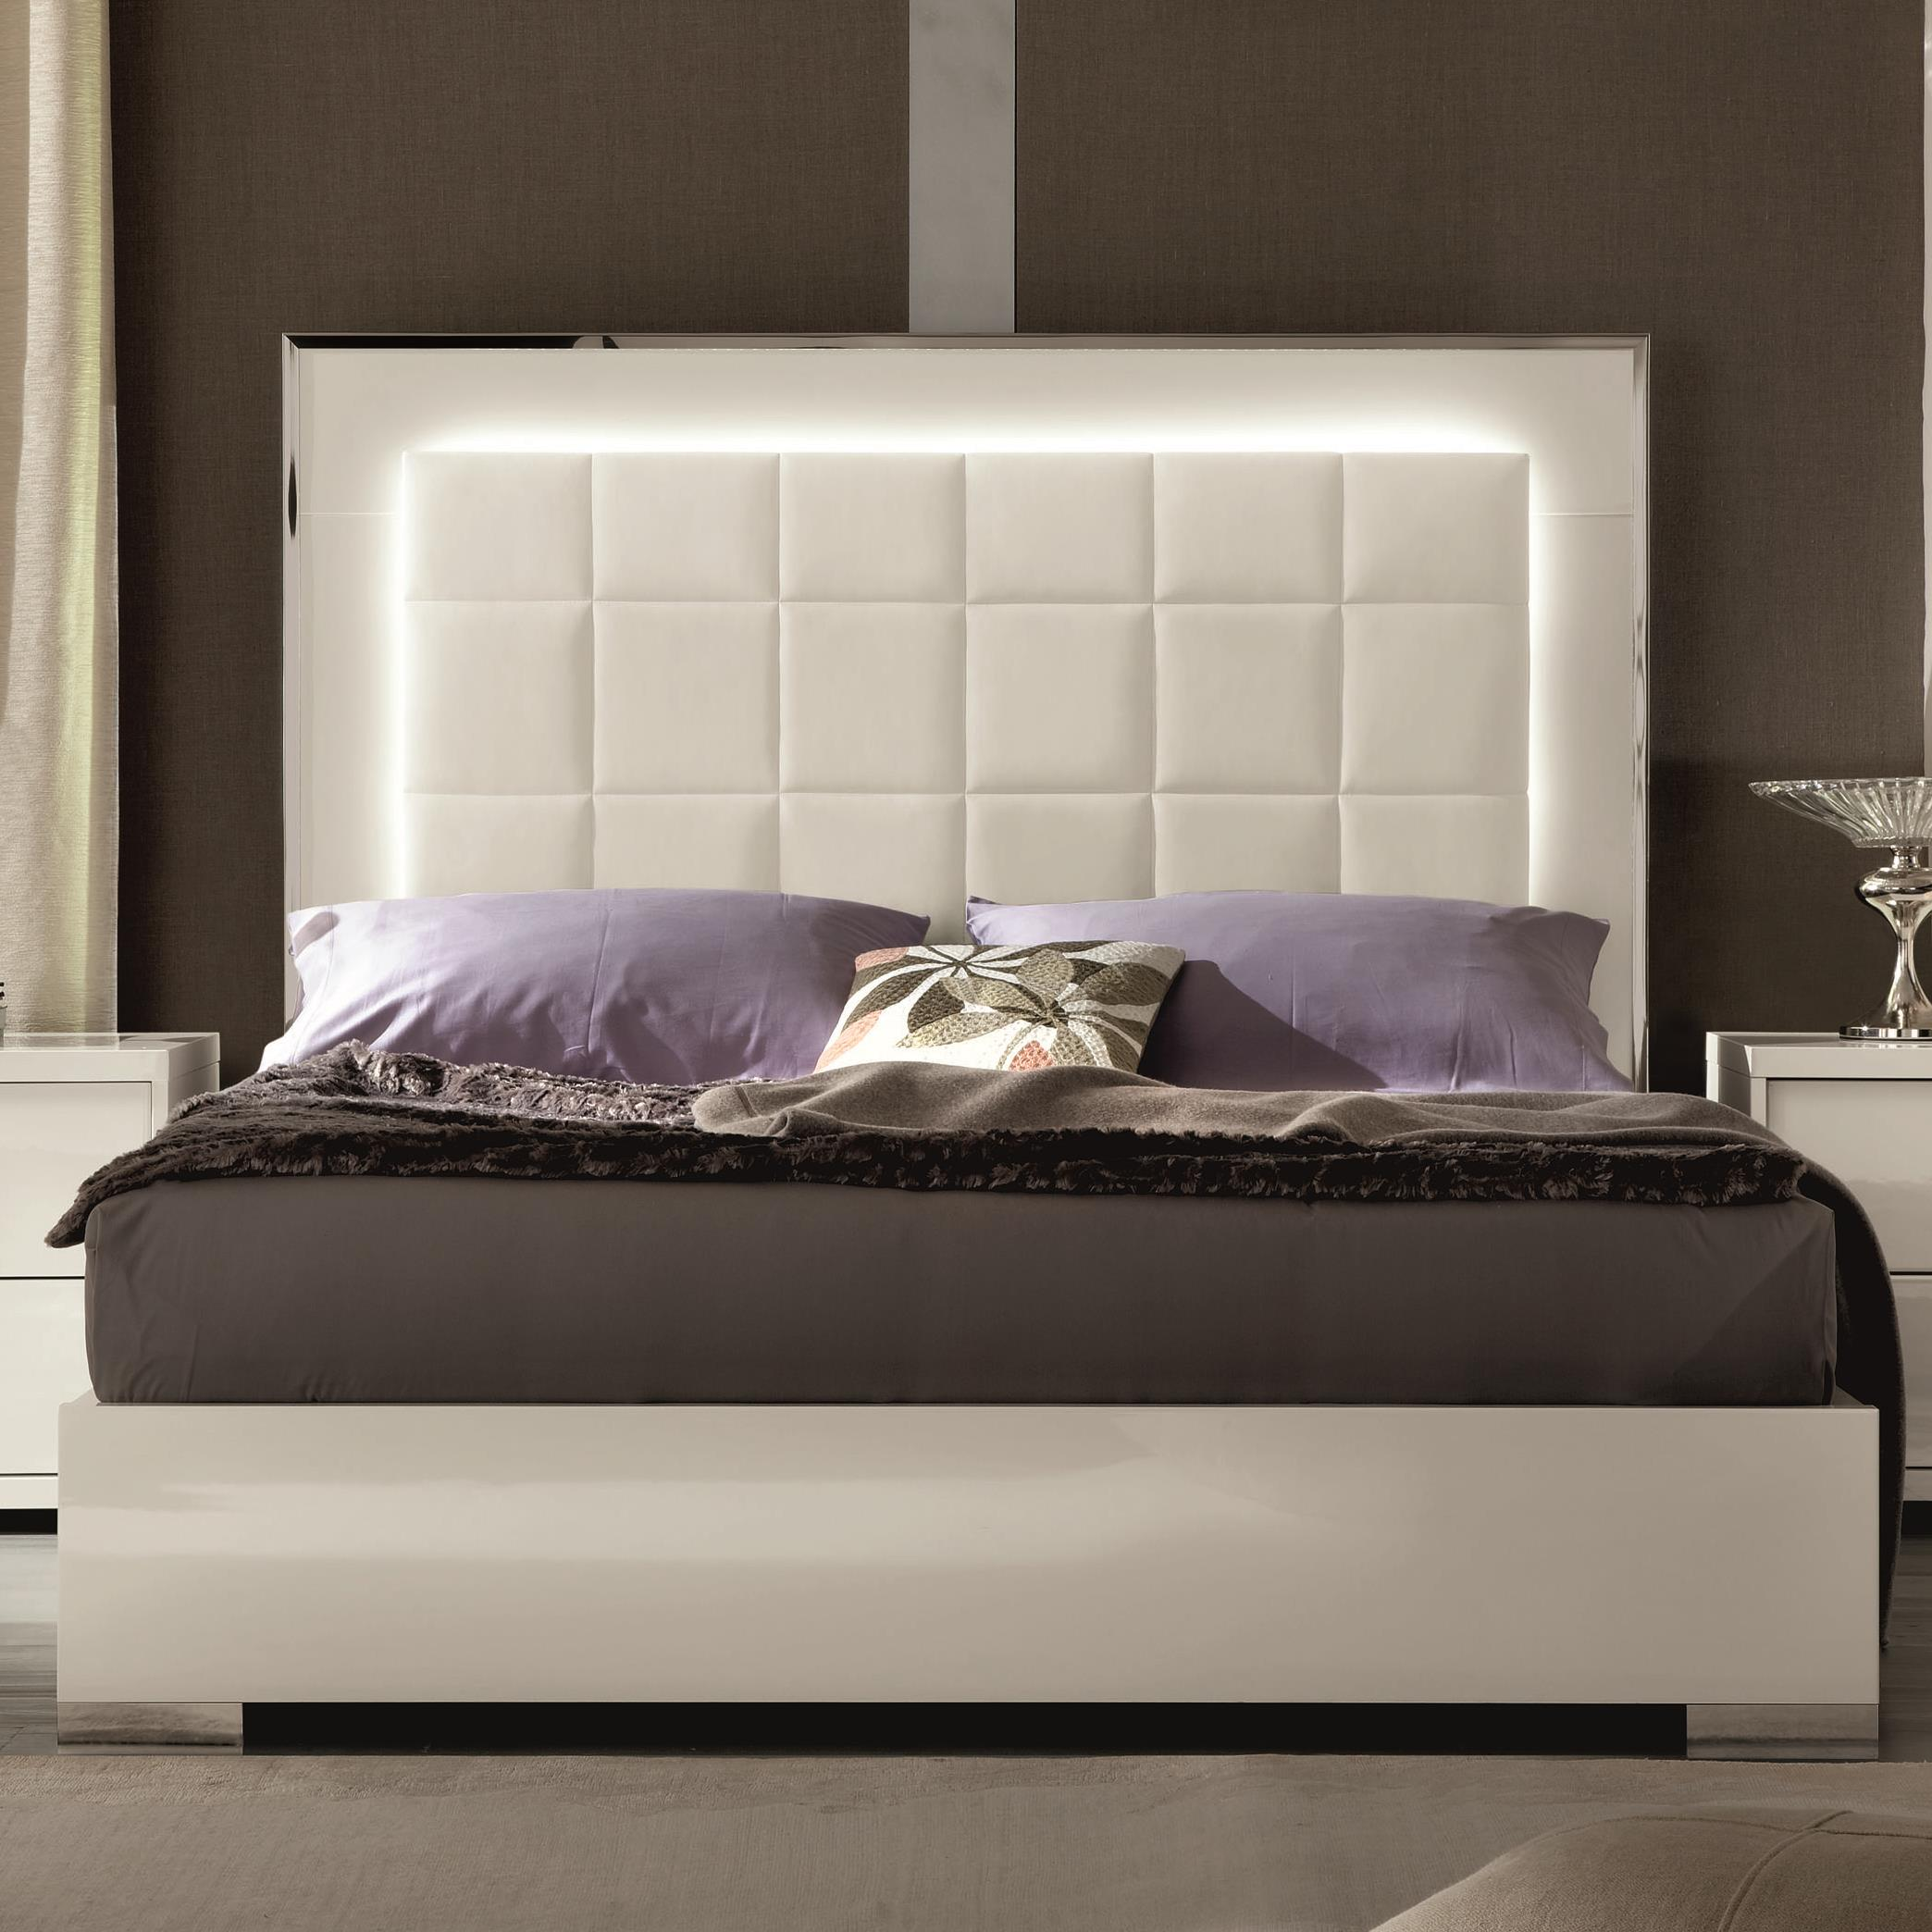 Queen UPH Bed w/ LED Lights and FB Storage